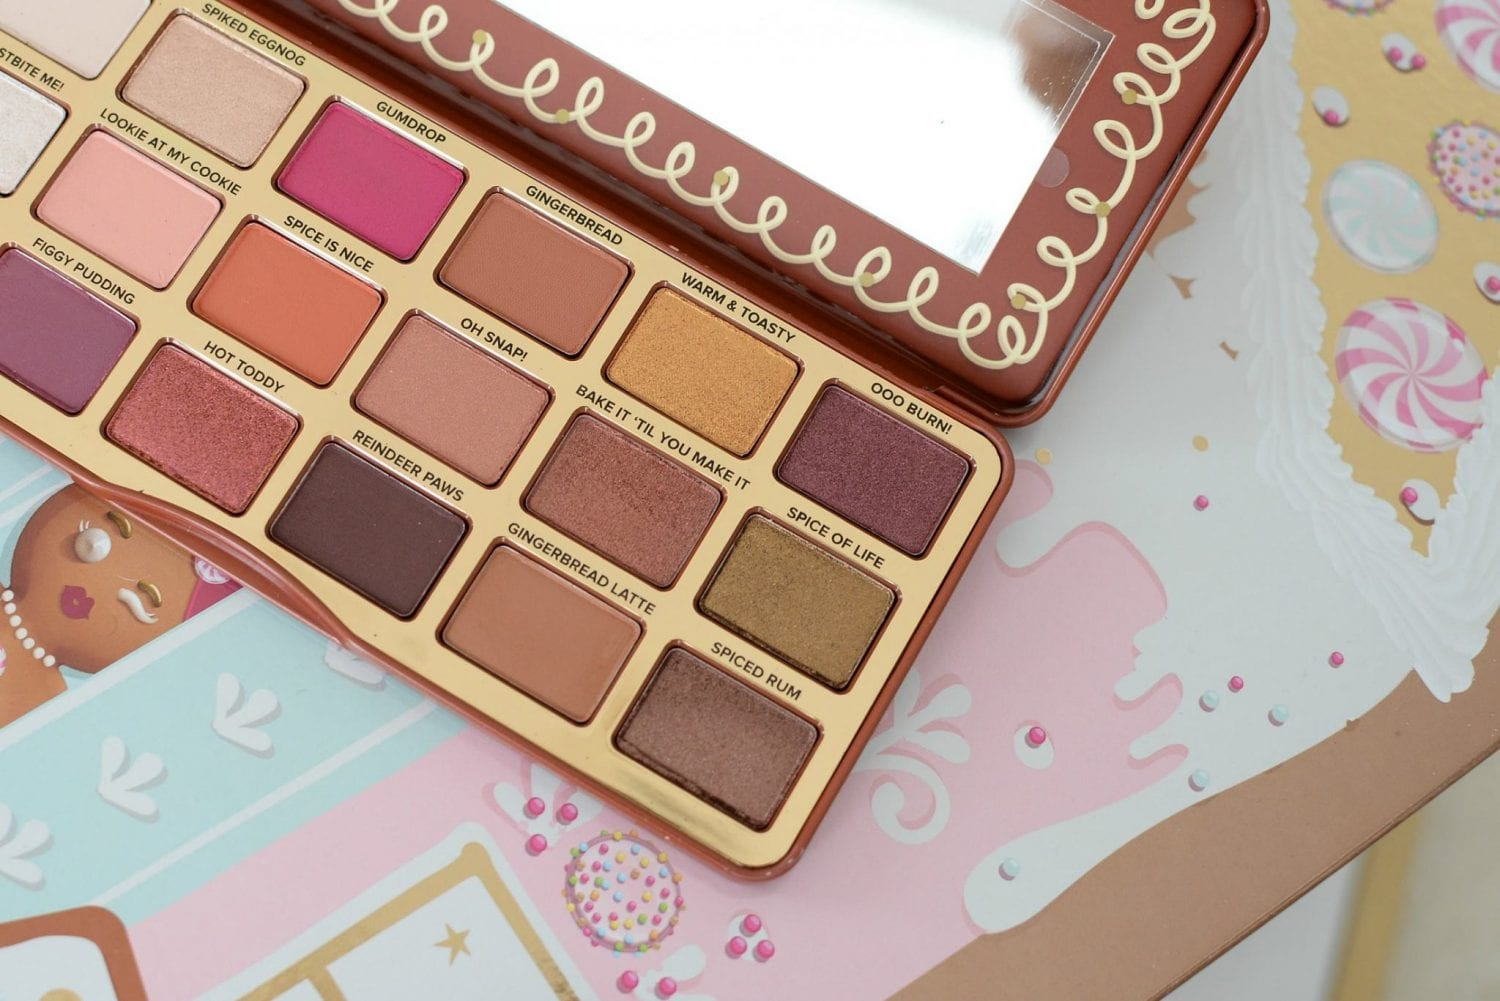 Too Faced Gingerbread Spiced Palette